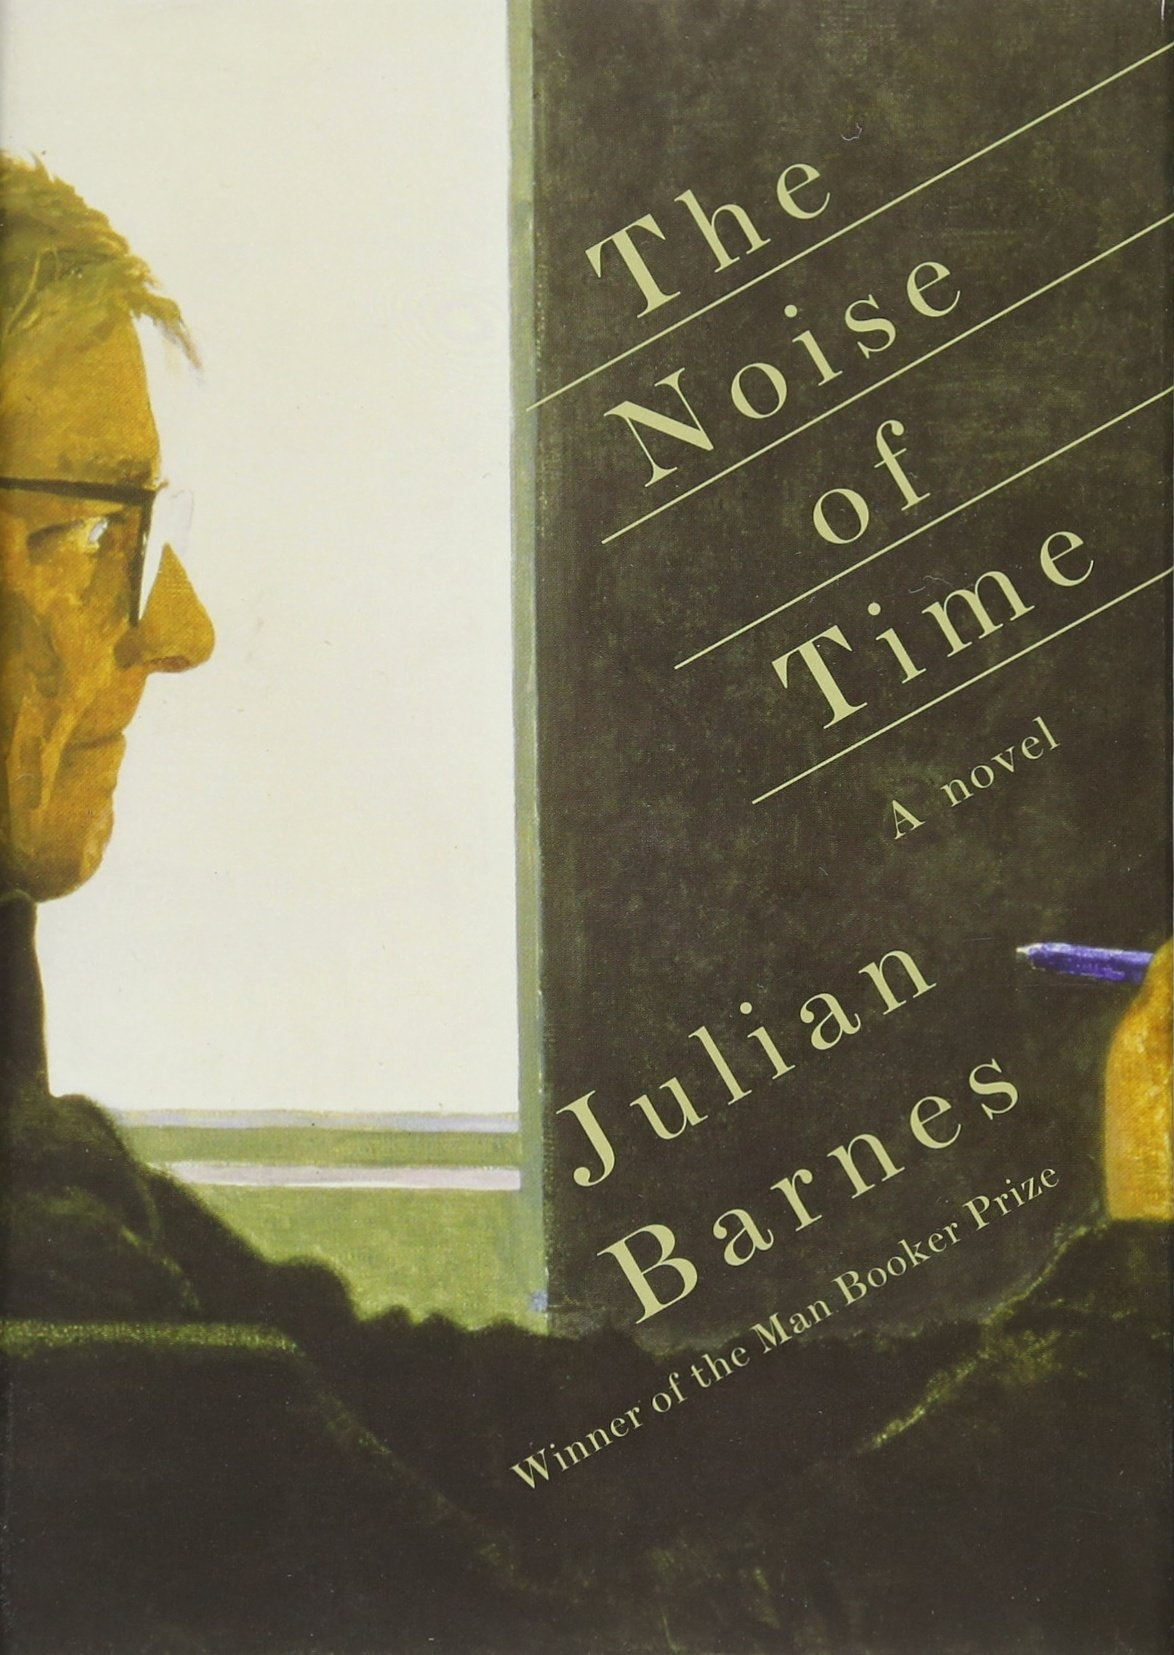 The Noise of Time by Julian Barnes, ISBN: 9781101947241